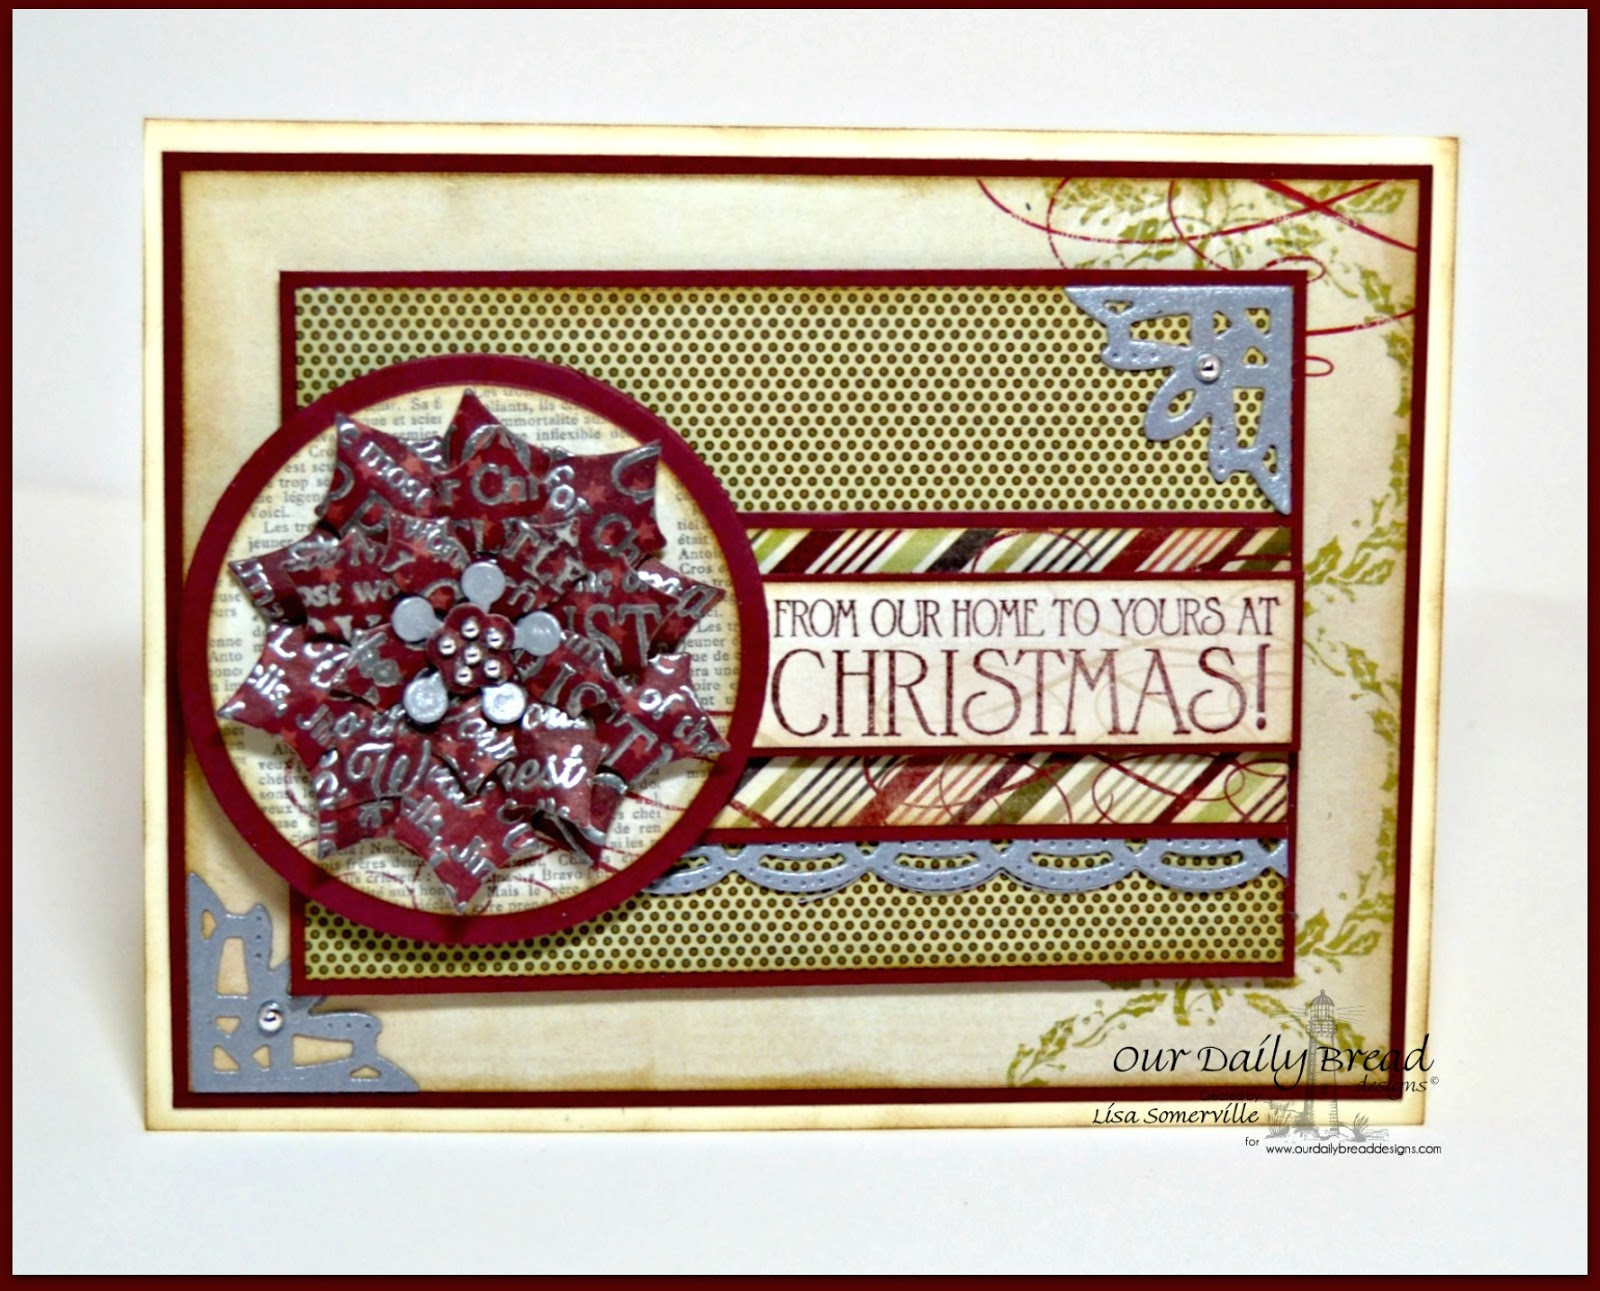 Stamps - Our Daily Bread Designs Noel Ornament, Christmas Door,  ODBD Custom Matting Circles Dies, ODBD Custom Circle Ornaments Dies, ODBD Custom Beautiful Borders Dies, ODBD Custom Peaceful Poinsettias Die, ODBD Custom Ornate Borders and Flower Dies